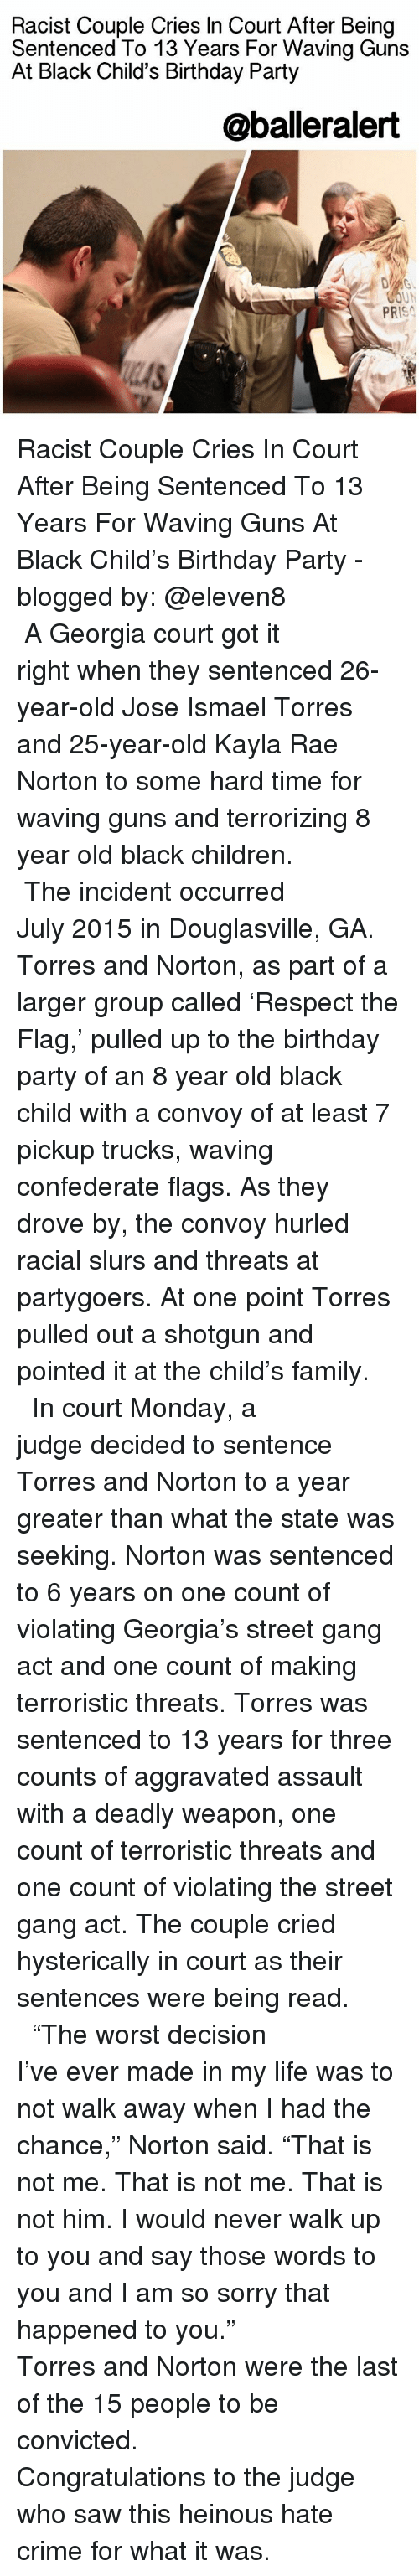 """Black Child: Racist Couple Cries In Court After Being  Sentenced To 13 Years For Waving Guns  At Black Child's Birthday Party  @balleralert  OUN  PR Racist Couple Cries In Court After Being Sentenced To 13 Years For Waving Guns At Black Child's Birthday Party - blogged by: @eleven8 ⠀⠀⠀⠀⠀⠀⠀⠀⠀ ⠀⠀⠀⠀⠀⠀⠀⠀⠀ A Georgia court got it right when they sentenced 26-year-old Jose Ismael Torres and 25-year-old Kayla Rae Norton to some hard time for waving guns and terrorizing 8 year old black children. ⠀⠀⠀⠀⠀⠀⠀⠀⠀ ⠀⠀⠀⠀⠀⠀⠀⠀⠀ The incident occurred July 2015 in Douglasville, GA. Torres and Norton, as part of a larger group called 'Respect the Flag,' pulled up to the birthday party of an 8 year old black child with a convoy of at least 7 pickup trucks, waving confederate flags. As they drove by, the convoy hurled racial slurs and threats at partygoers. At one point Torres pulled out a shotgun and pointed it at the child's family. ⠀⠀⠀⠀⠀⠀⠀⠀⠀ ⠀⠀⠀⠀⠀⠀⠀⠀⠀ In court Monday, a judge decided to sentence Torres and Norton to a year greater than what the state was seeking. Norton was sentenced to 6 years on one count of violating Georgia's street gang act and one count of making terroristic threats. Torres was sentenced to 13 years for three counts of aggravated assault with a deadly weapon, one count of terroristic threats and one count of violating the street gang act. The couple cried hysterically in court as their sentences were being read. ⠀⠀⠀⠀⠀⠀⠀⠀⠀ ⠀⠀⠀⠀⠀⠀⠀⠀⠀ """"The worst decision I've ever made in my life was to not walk away when I had the chance,"""" Norton said. """"That is not me. That is not me. That is not him. I would never walk up to you and say those words to you and I am so sorry that happened to you."""" ⠀⠀⠀⠀⠀⠀⠀⠀⠀ ⠀⠀⠀⠀⠀⠀⠀⠀⠀ Torres and Norton were the last of the 15 people to be convicted. ⠀⠀⠀⠀⠀⠀⠀⠀⠀ ⠀⠀⠀⠀⠀⠀⠀⠀⠀ Congratulations to the judge who saw this heinous hate crime for what it was."""